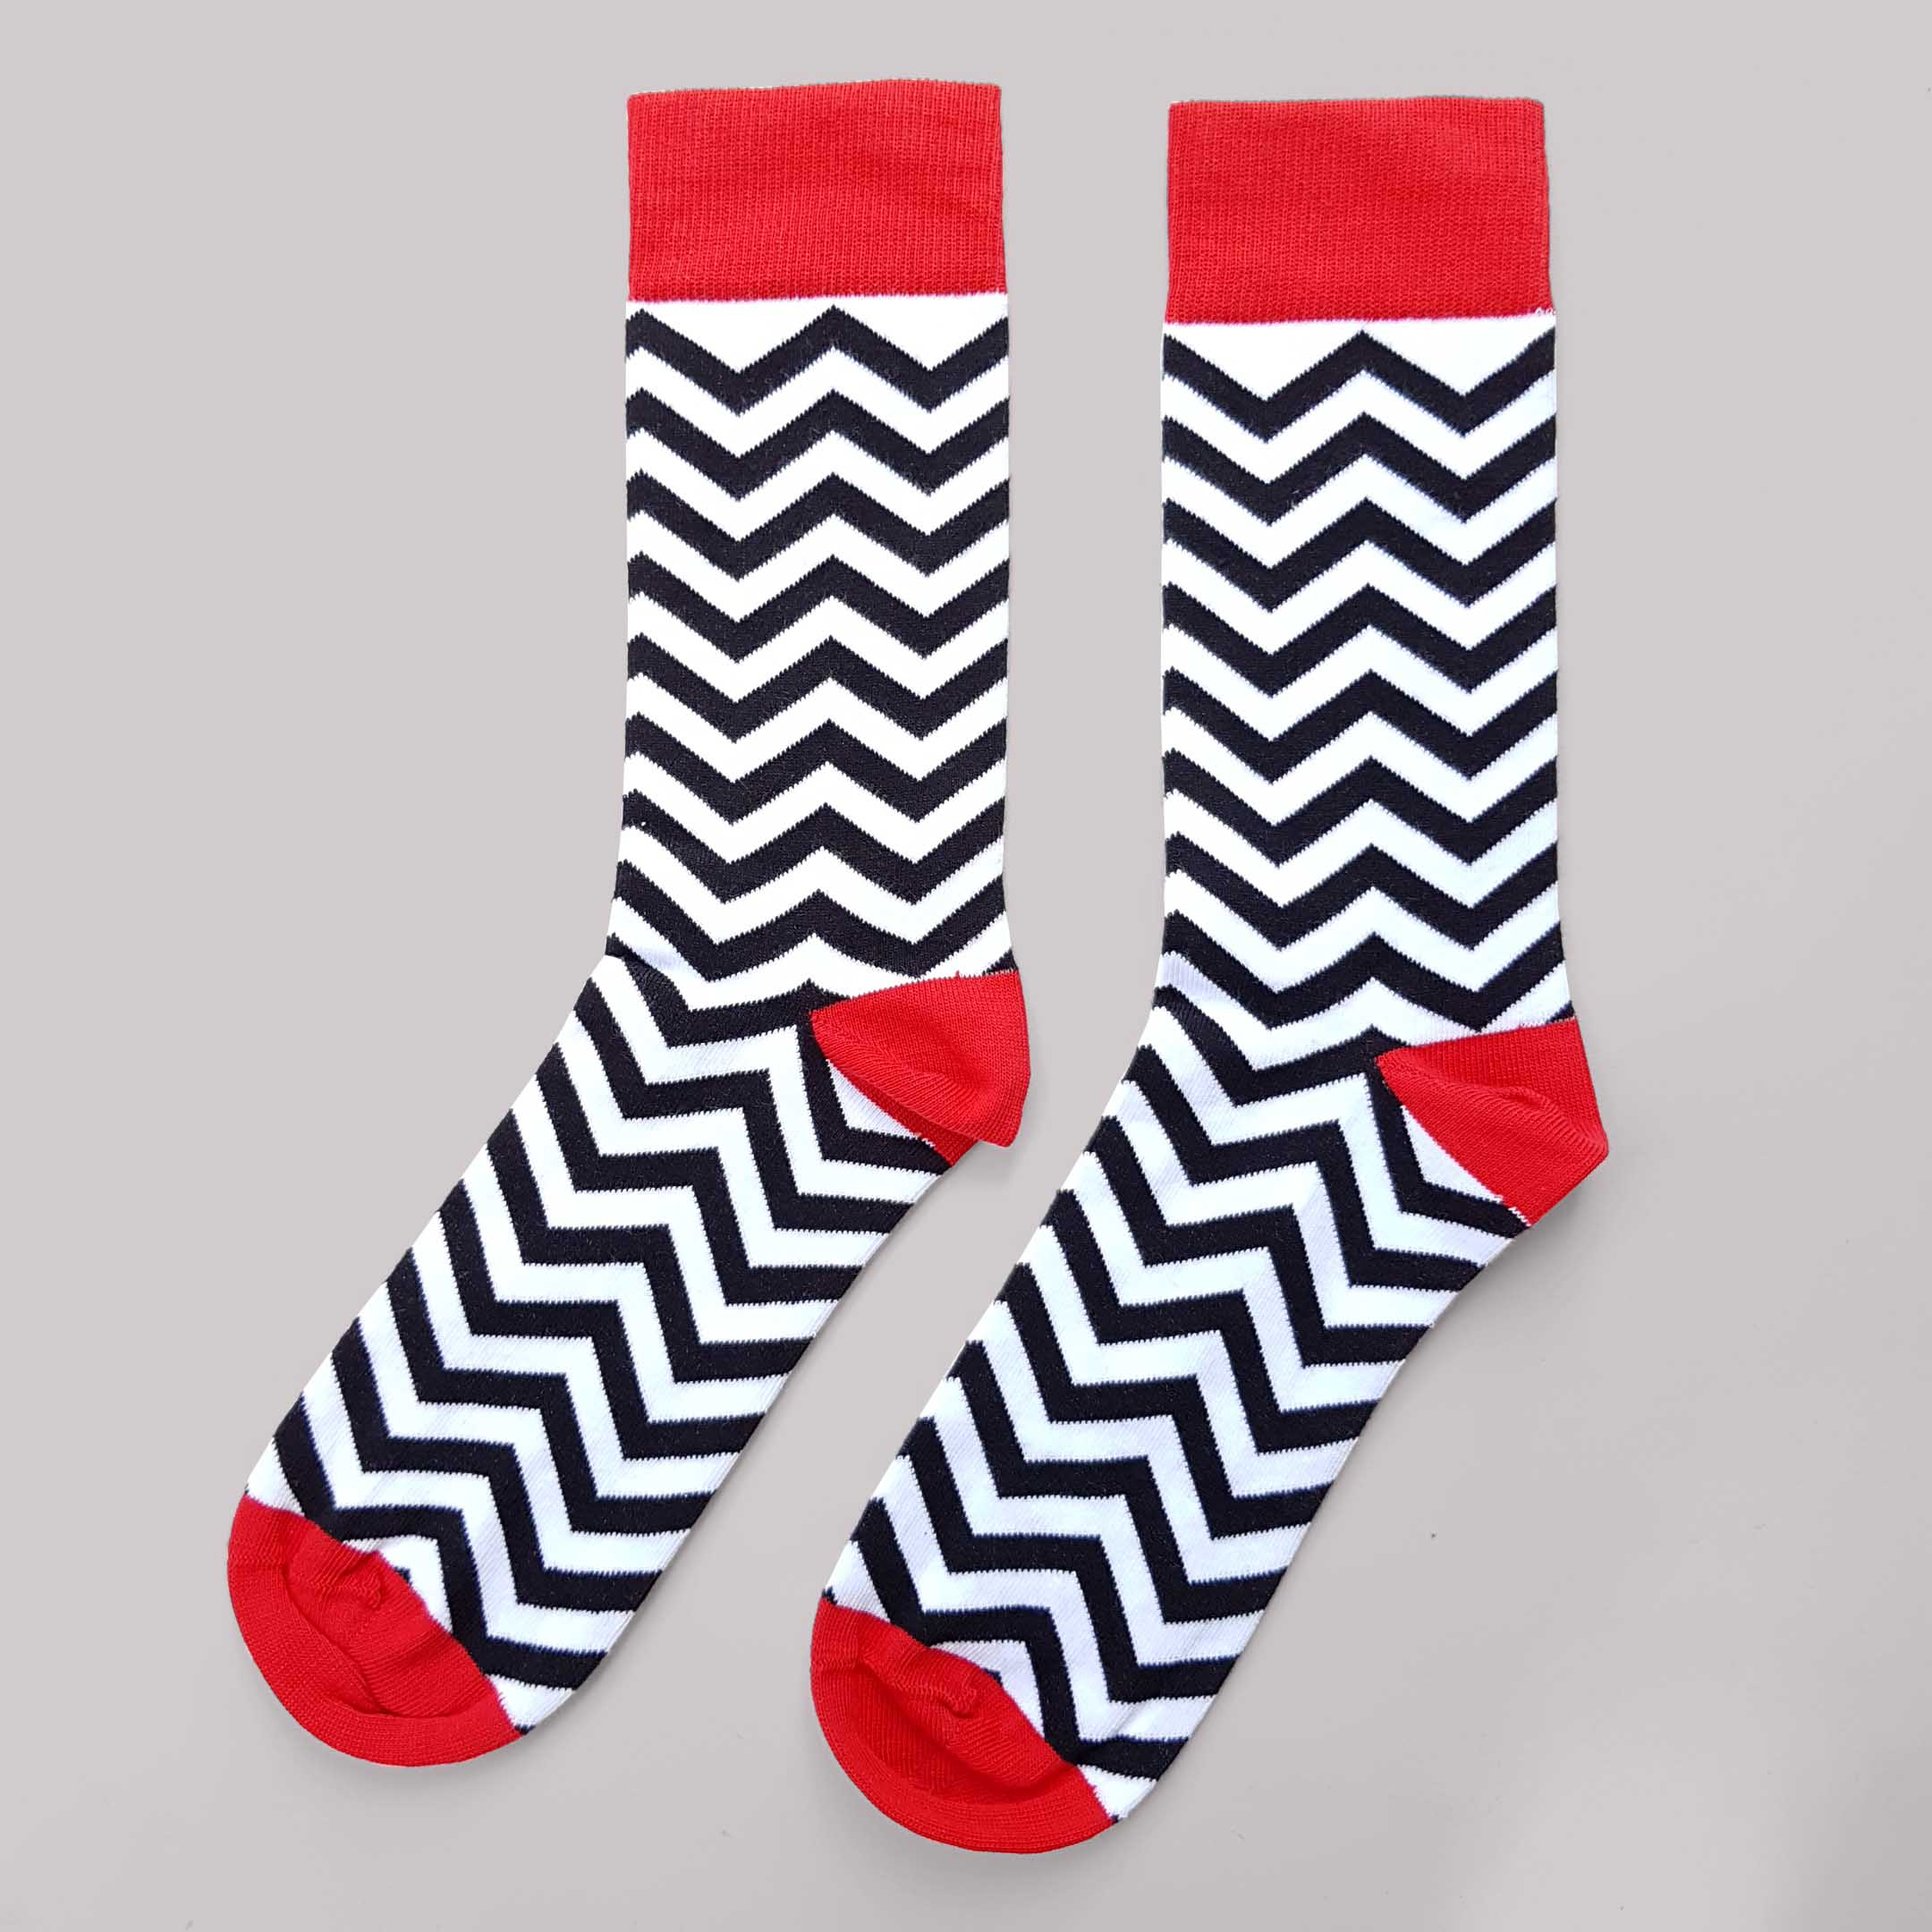 Buy Red Room Socks